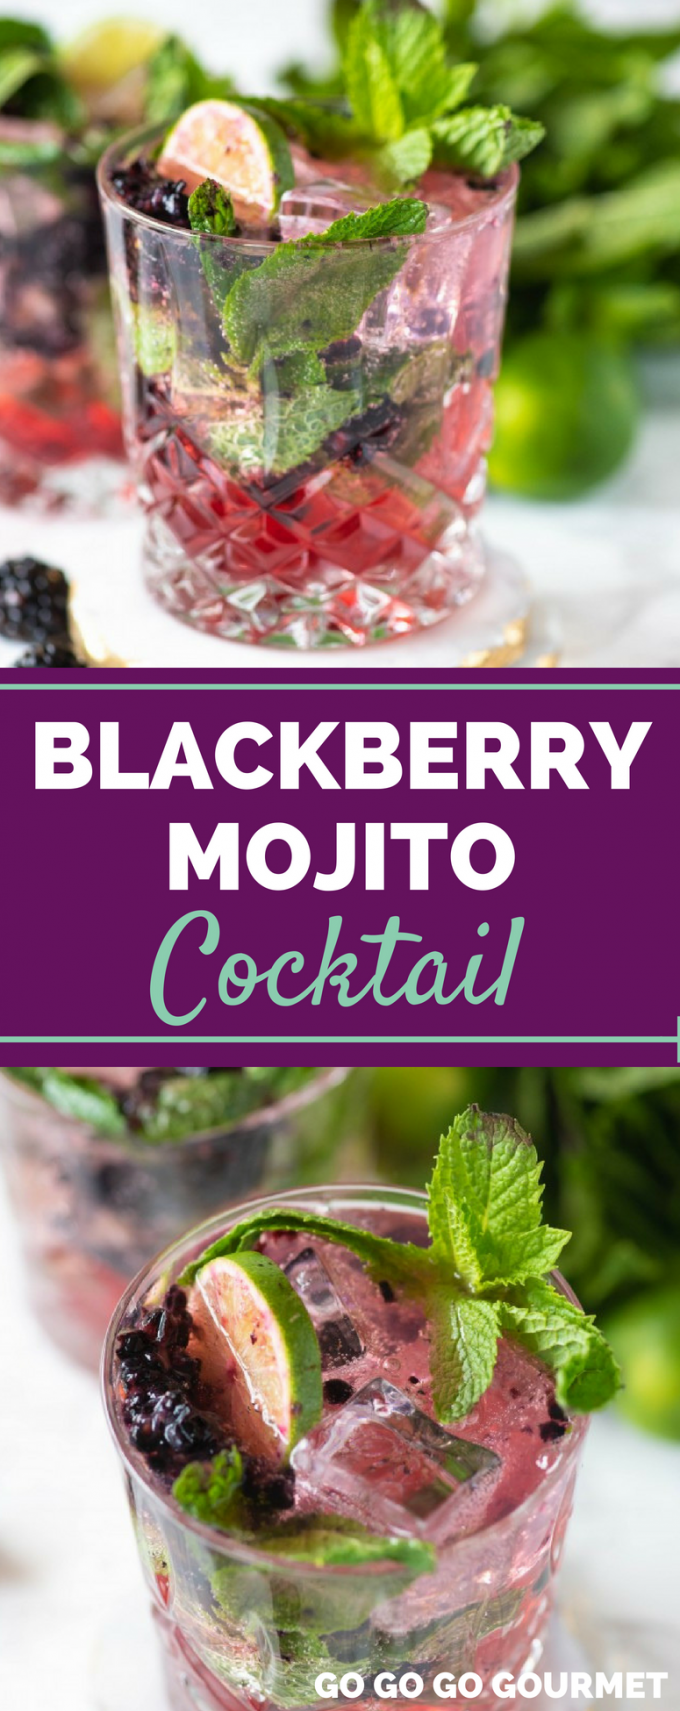 If you like the Starbucks mocktail, you are going to LOVE this Blackberry Mojito cocktail recipe! Whether you're making a pitcher or just one for yourself, this will be one of your favorite refreshing summer drinks! #easysummercocktails #refreshingcocktails #blackberrymojitococktail #gogogogourmet